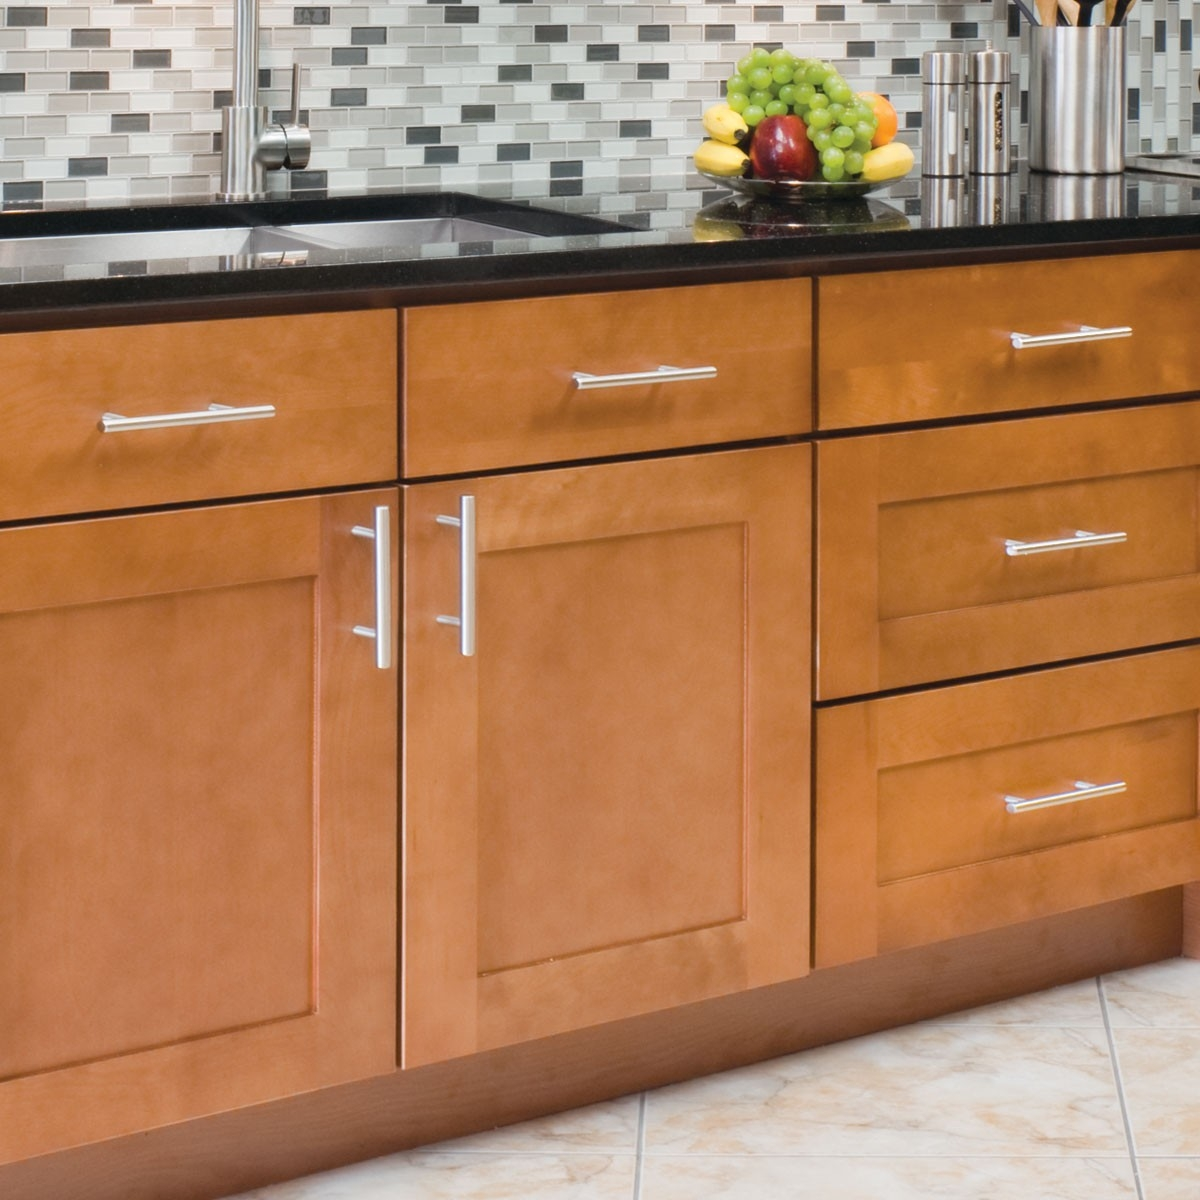 Solid Stainless Steel Kitchen Cabinet Handles